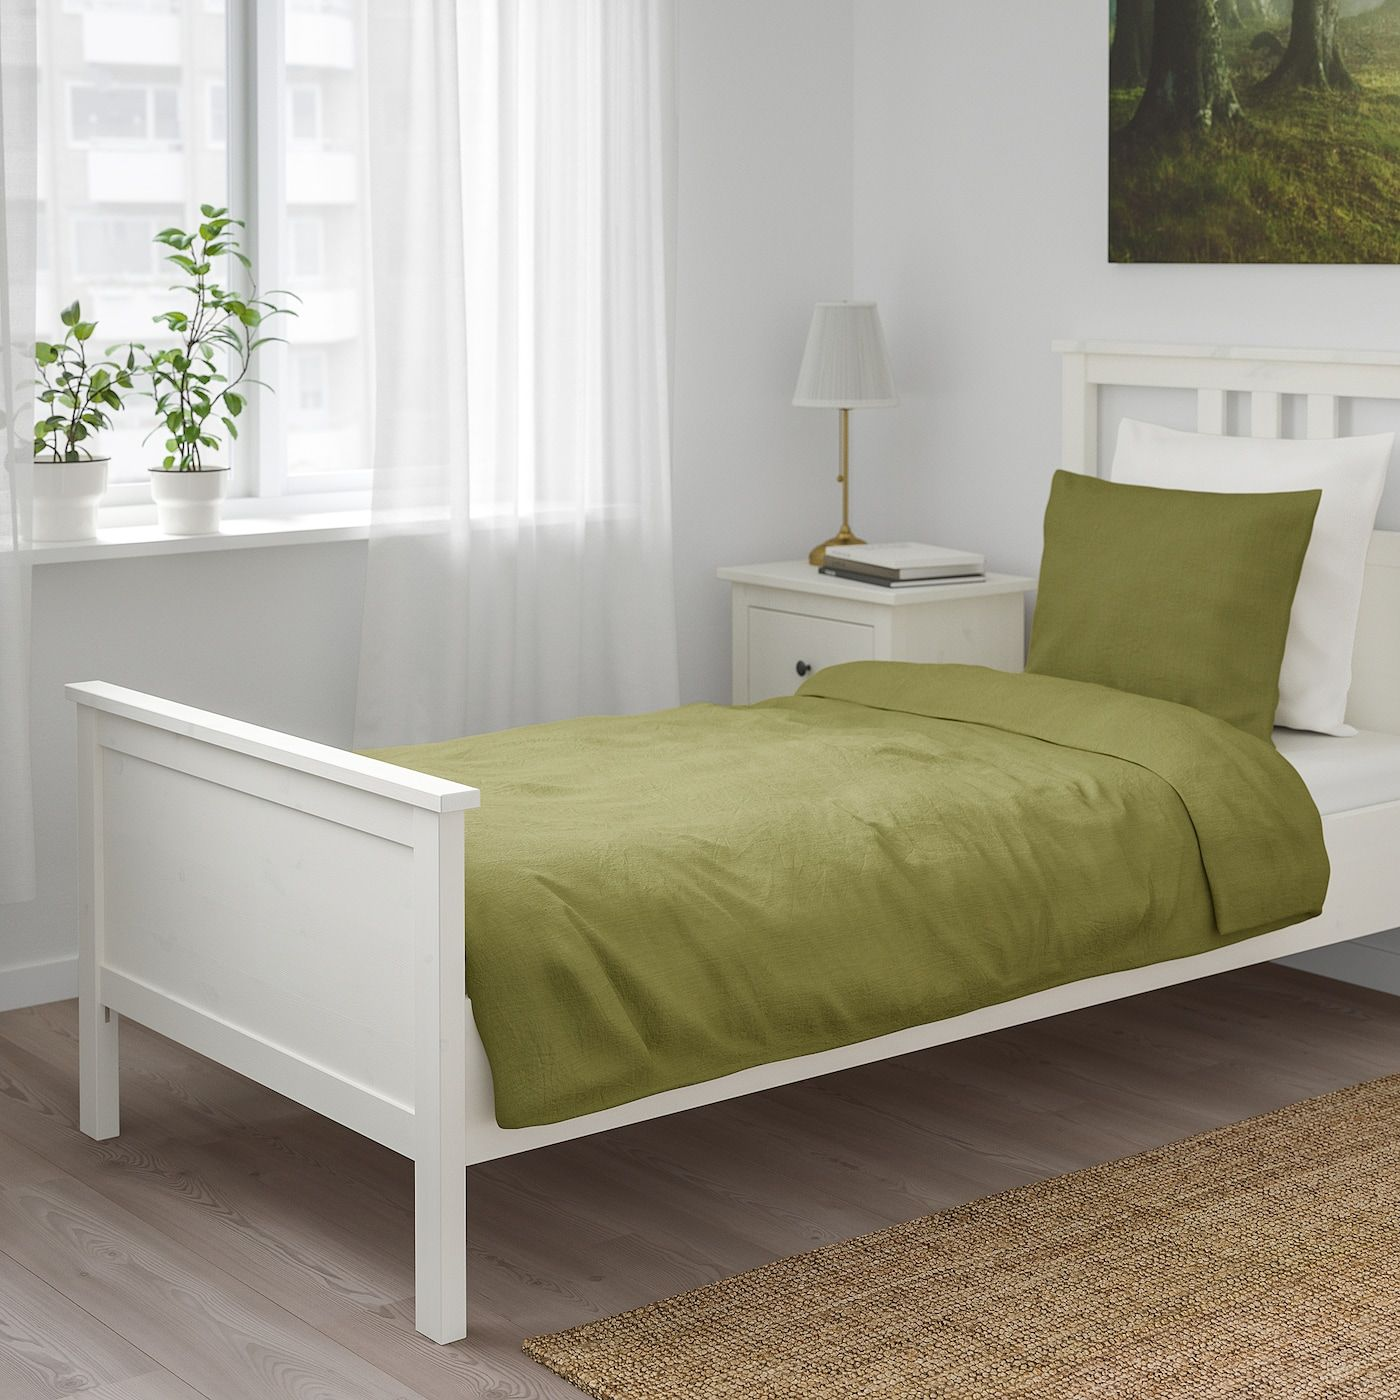 Ikea Puderviva Light Olive Green Duvet Cover And Pillowcase S In